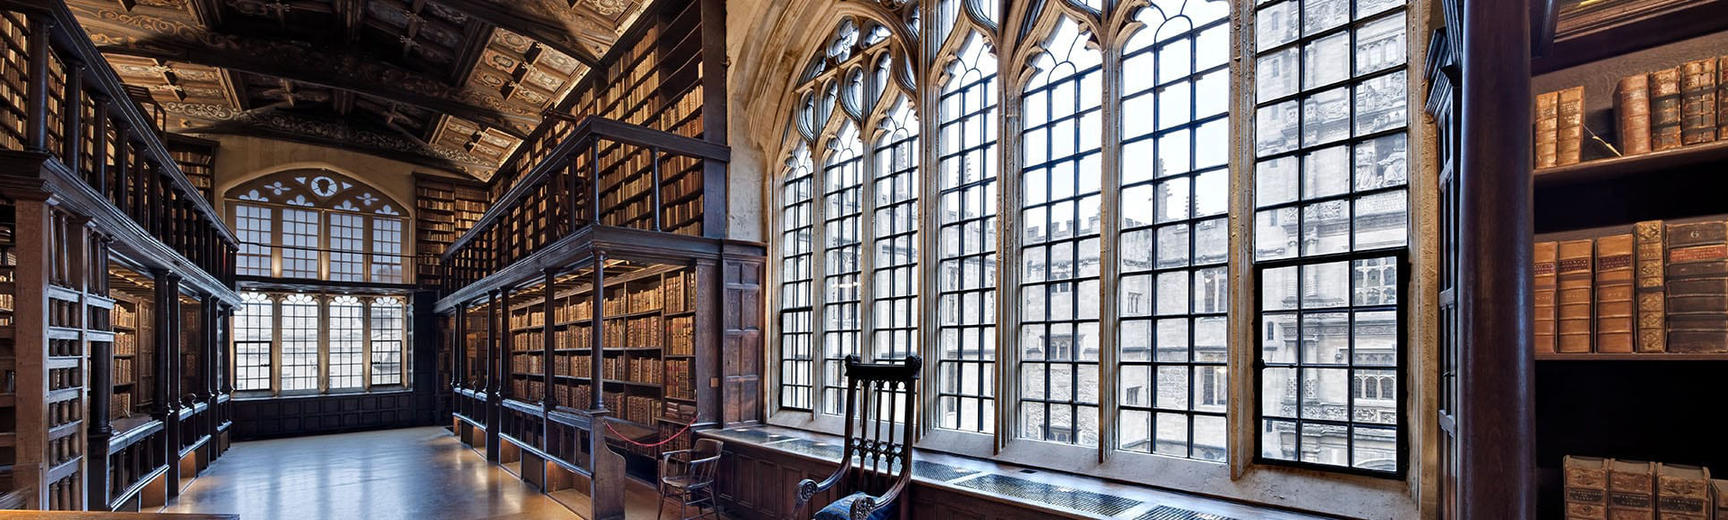 Duke Humfrey's Library